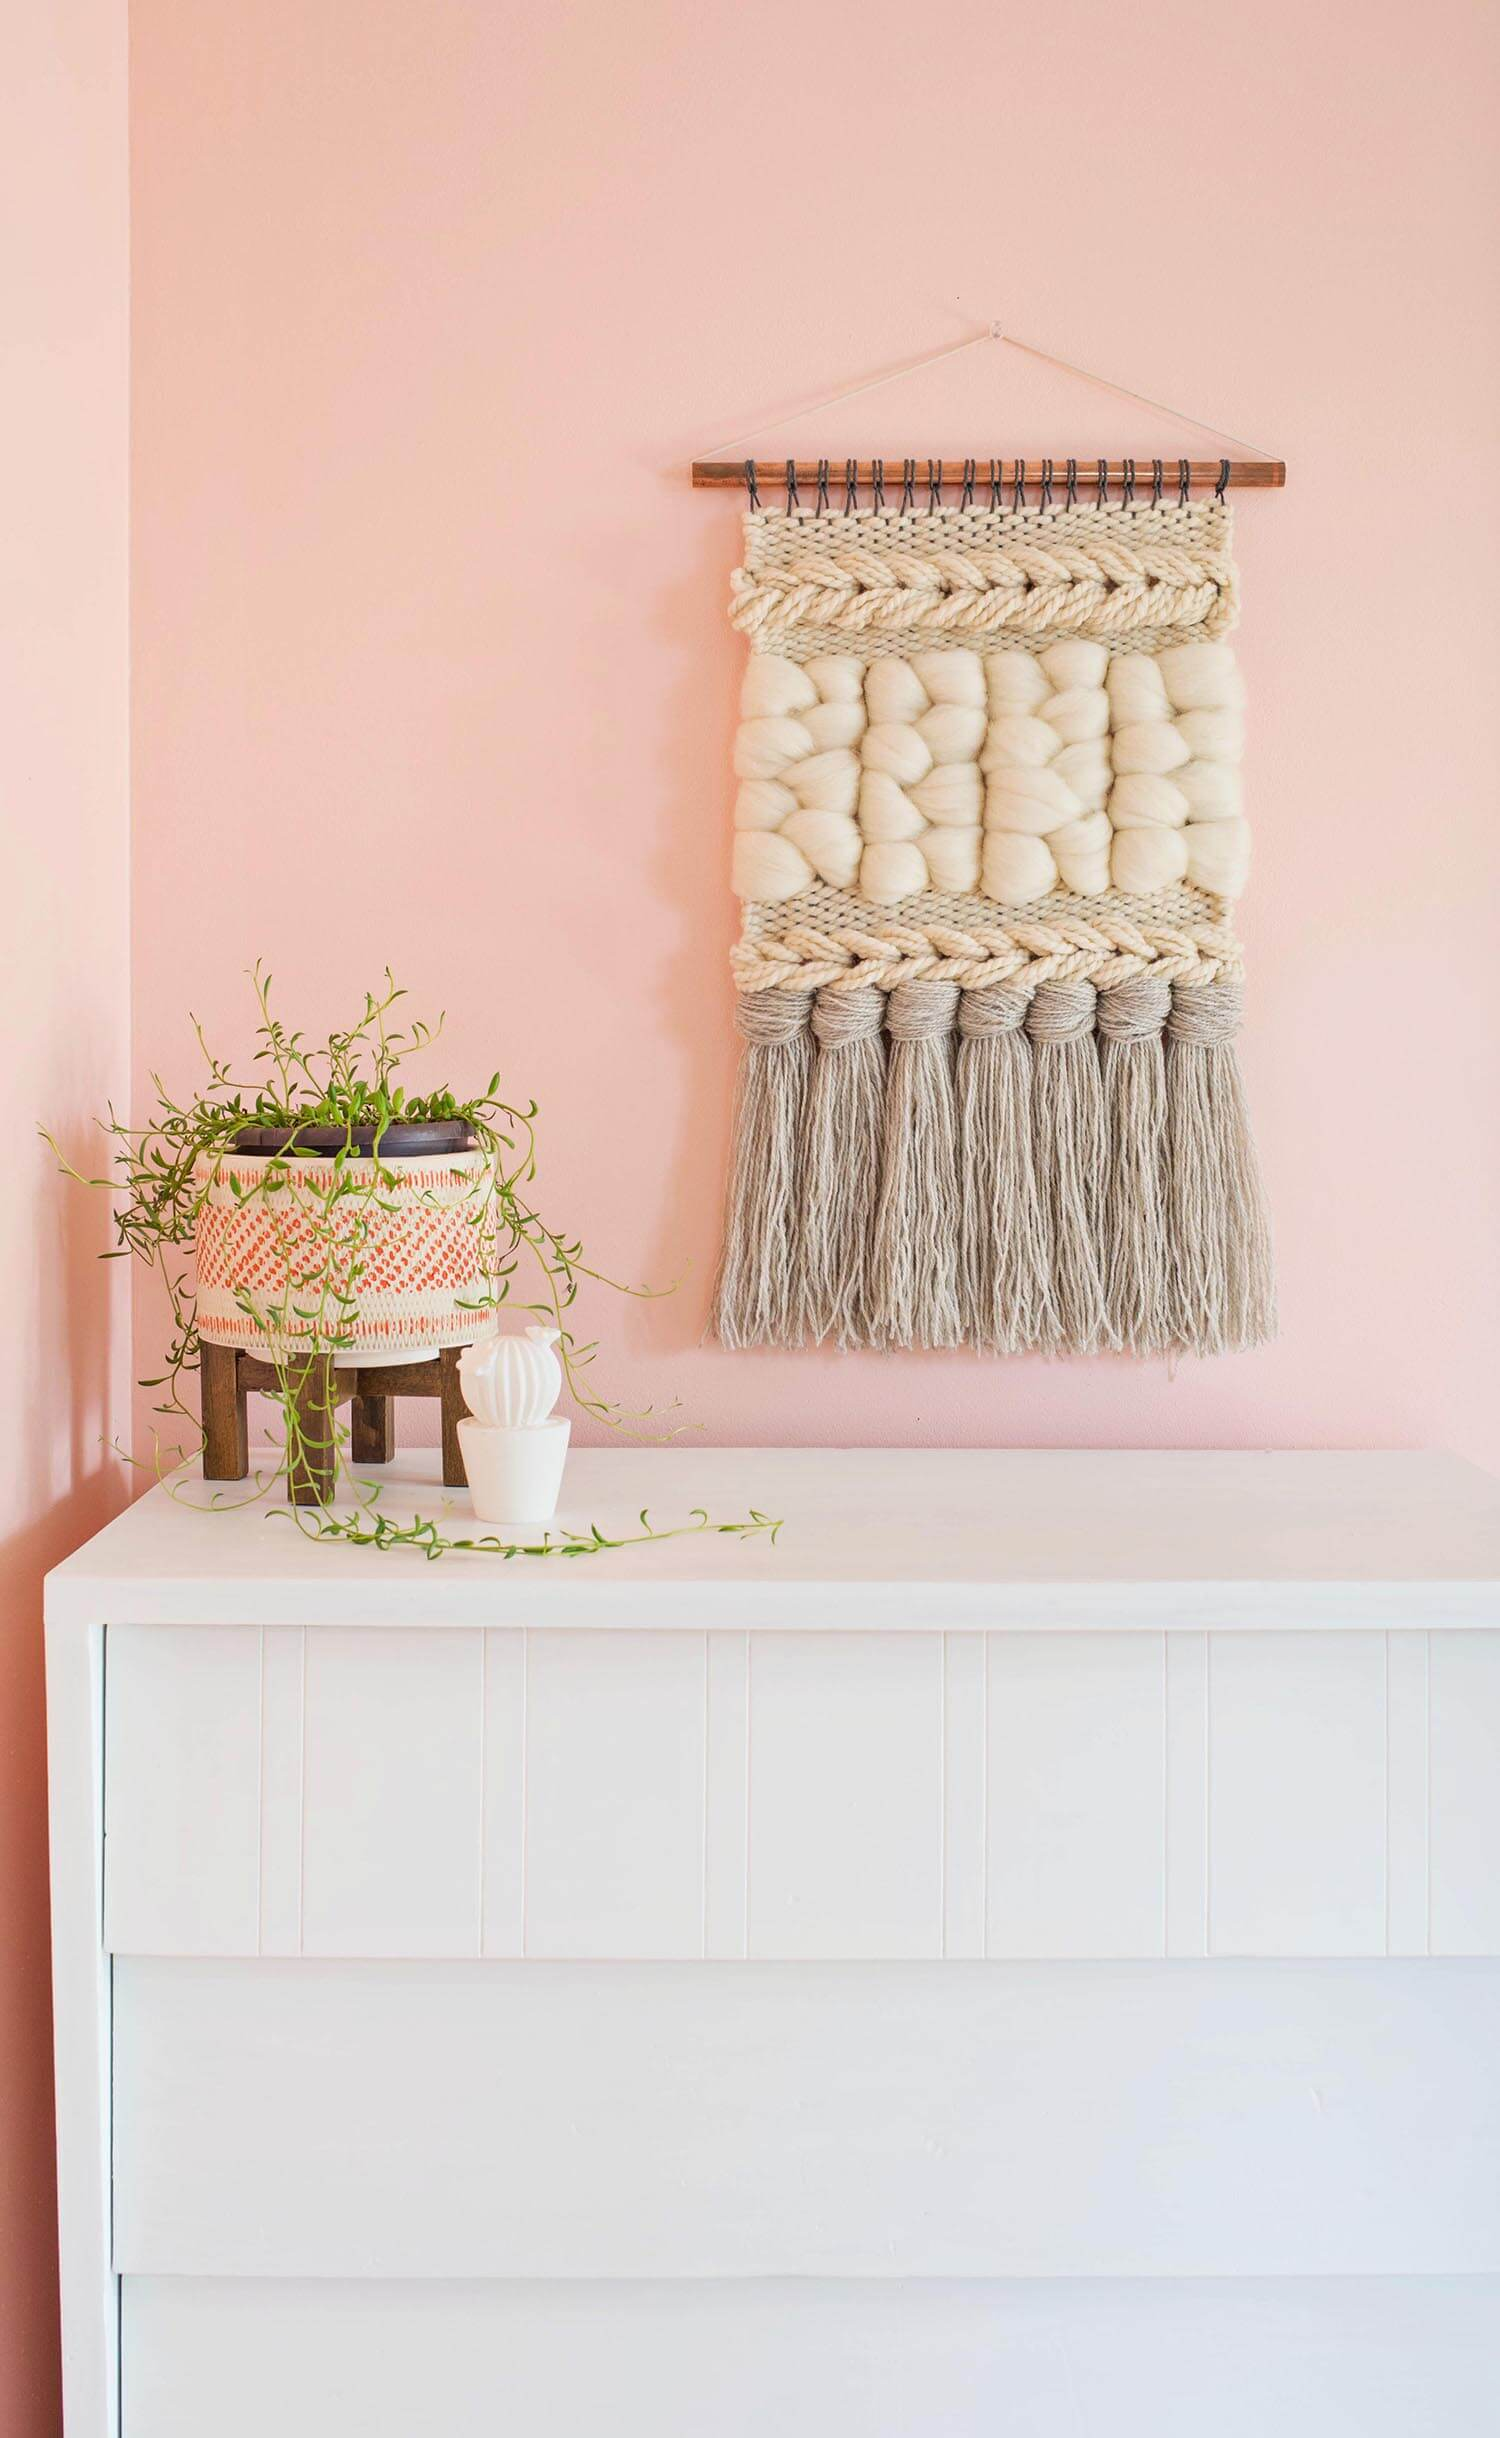 These Diy Woven Yarn Wall Hangings Will Add Texture And